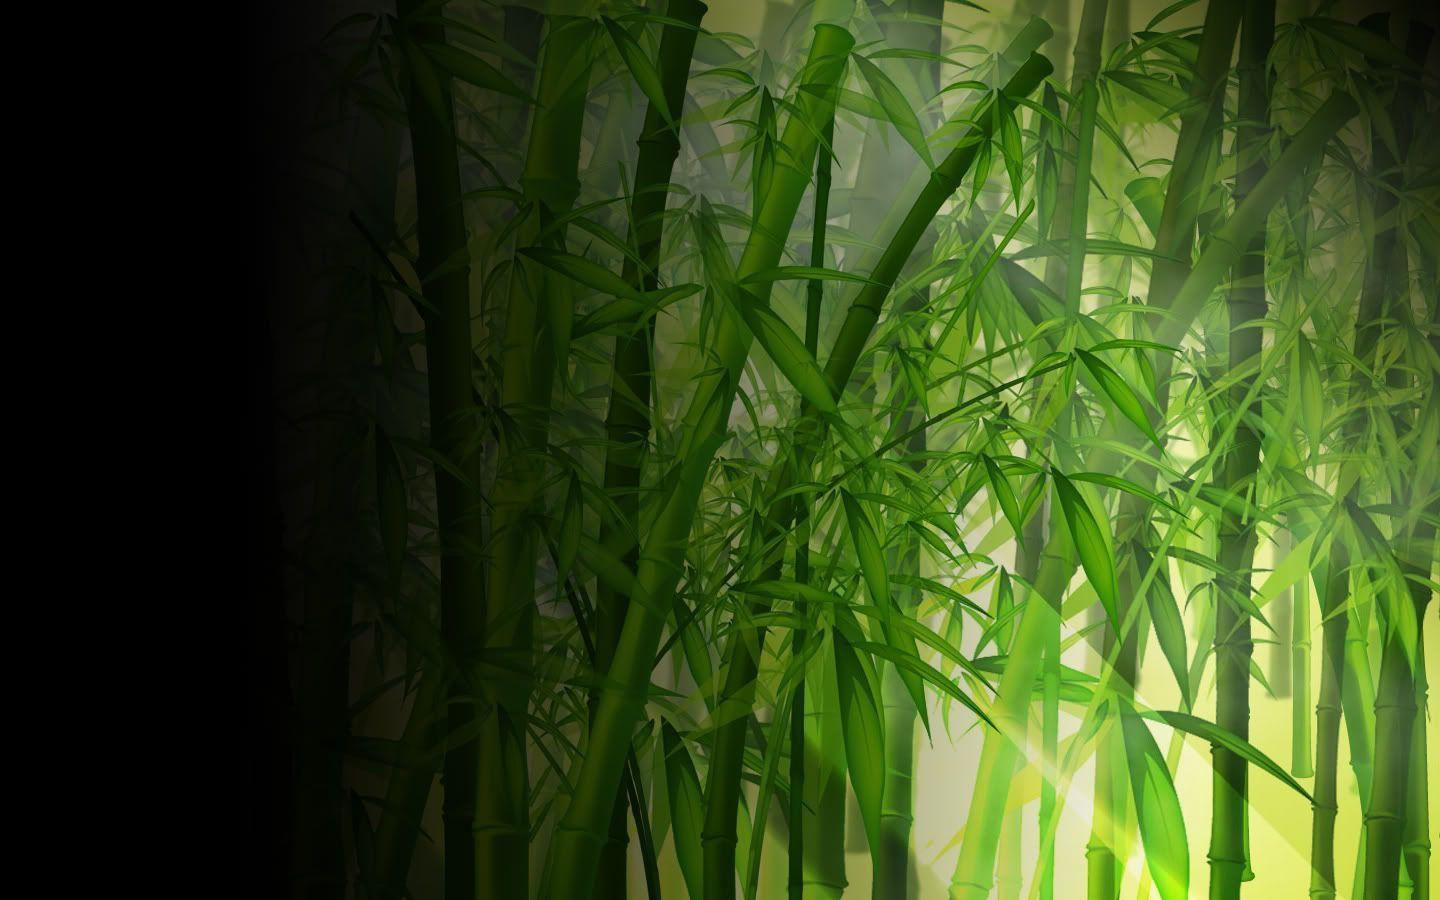 bamboo wallpaper by doantrangnguyen - photo #10